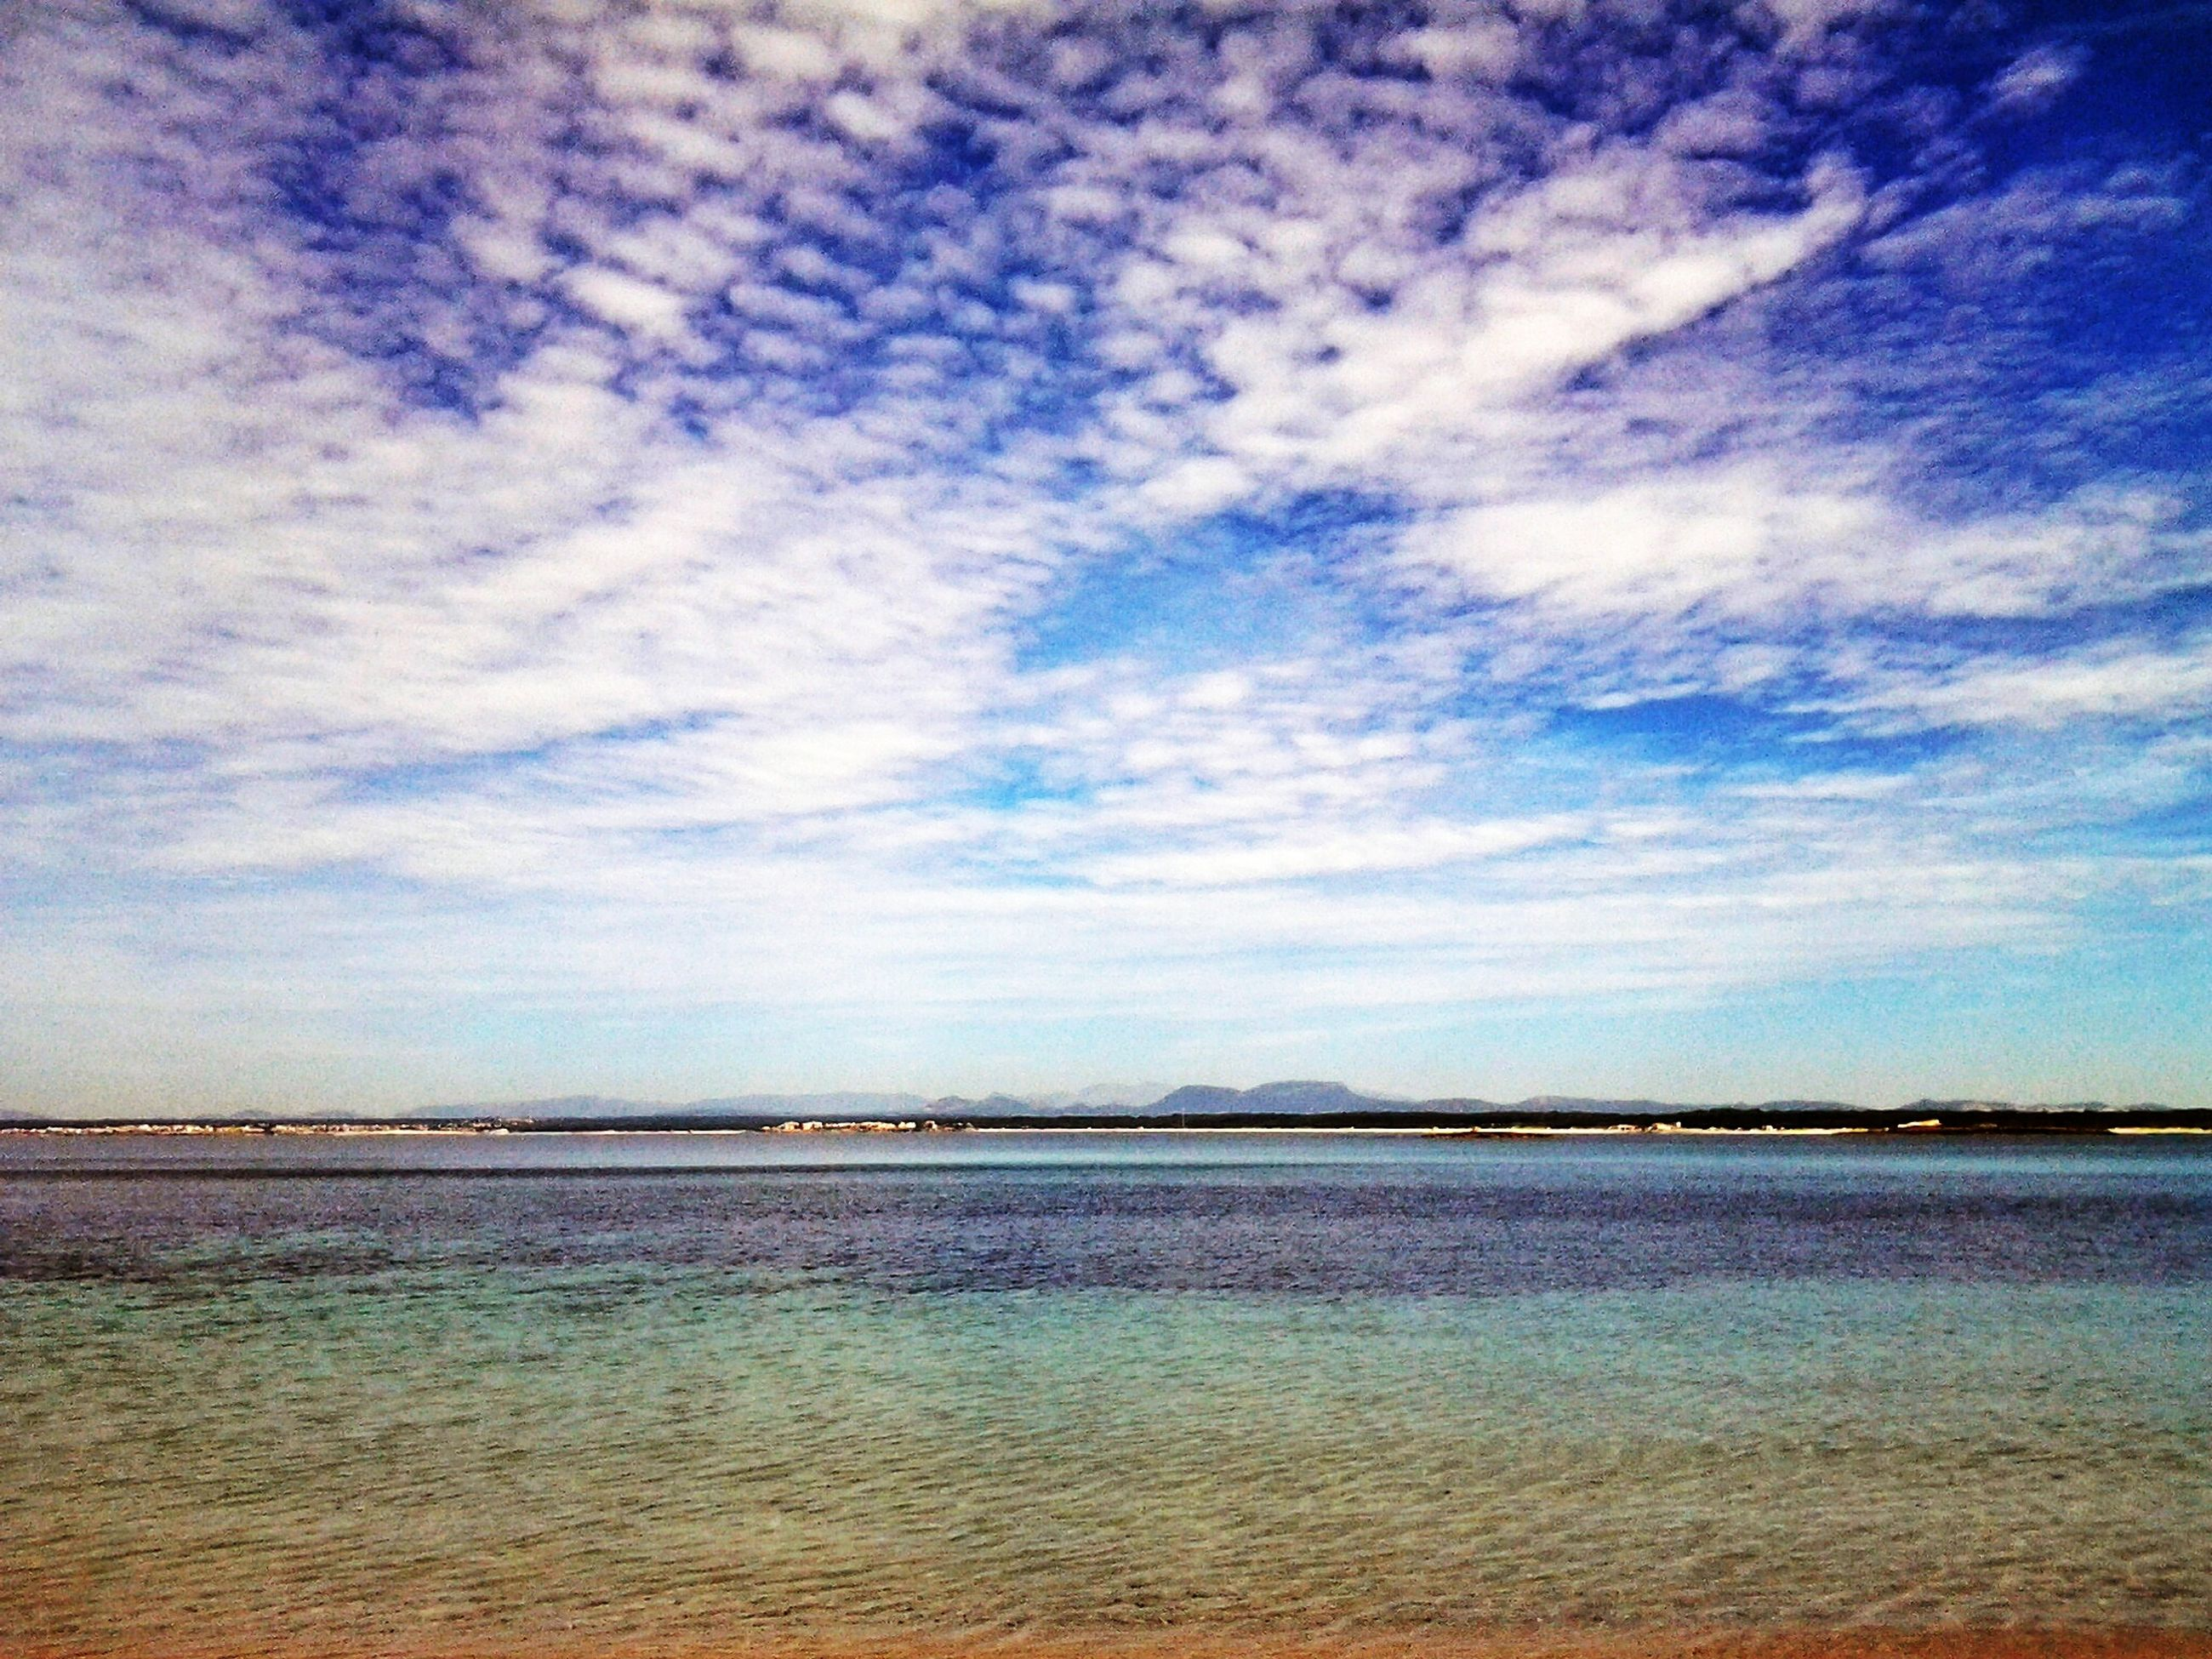 water, sea, sky, tranquil scene, tranquility, scenics, beach, beauty in nature, cloud - sky, horizon over water, blue, waterfront, cloud, nature, shore, idyllic, cloudy, sand, calm, rippled